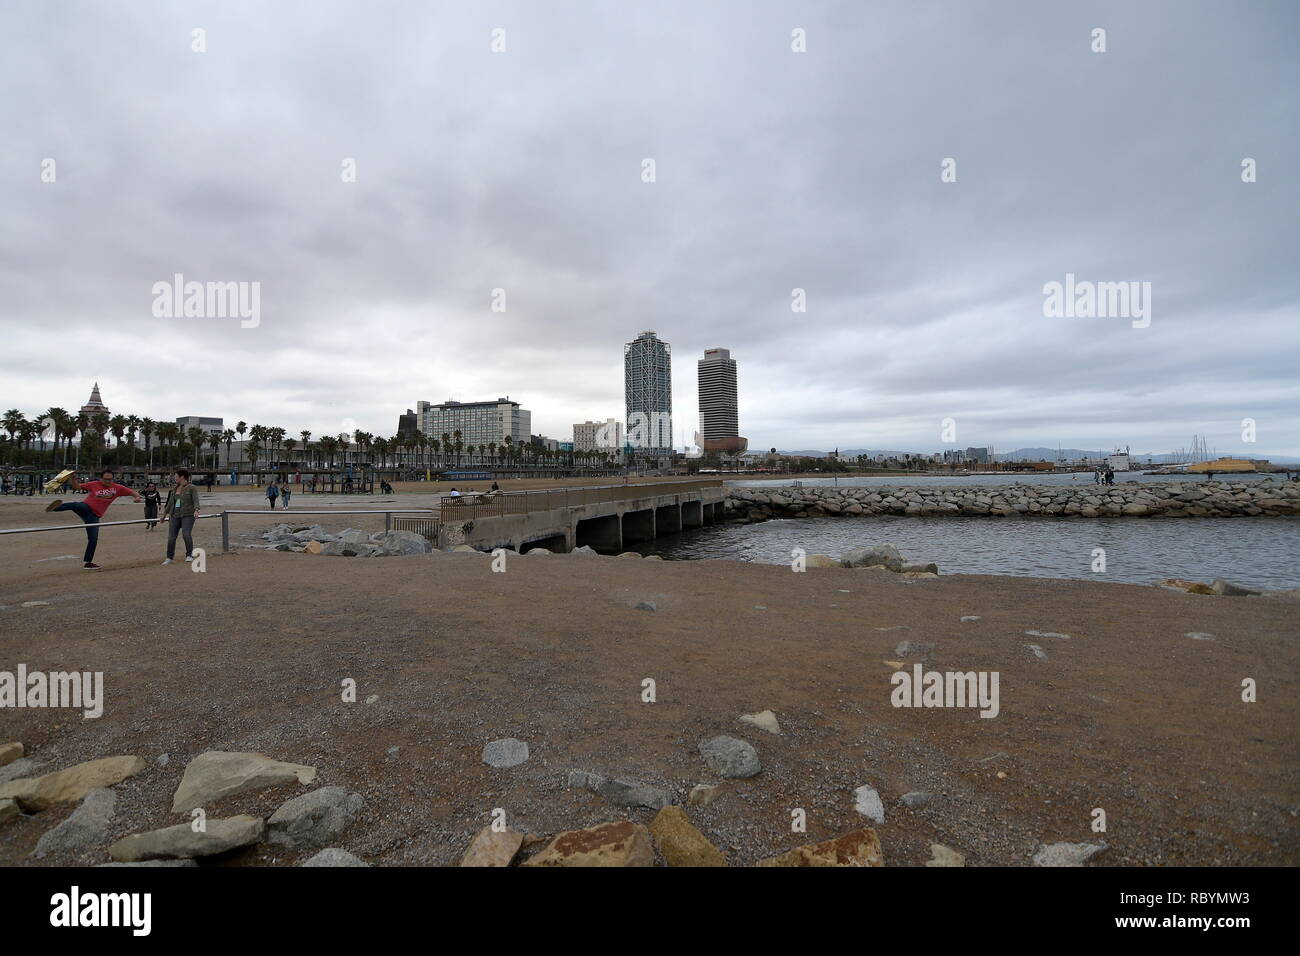 Barcelona, Spain. Barcelona's man-made beach is a destination even in bad weather. - Stock Image